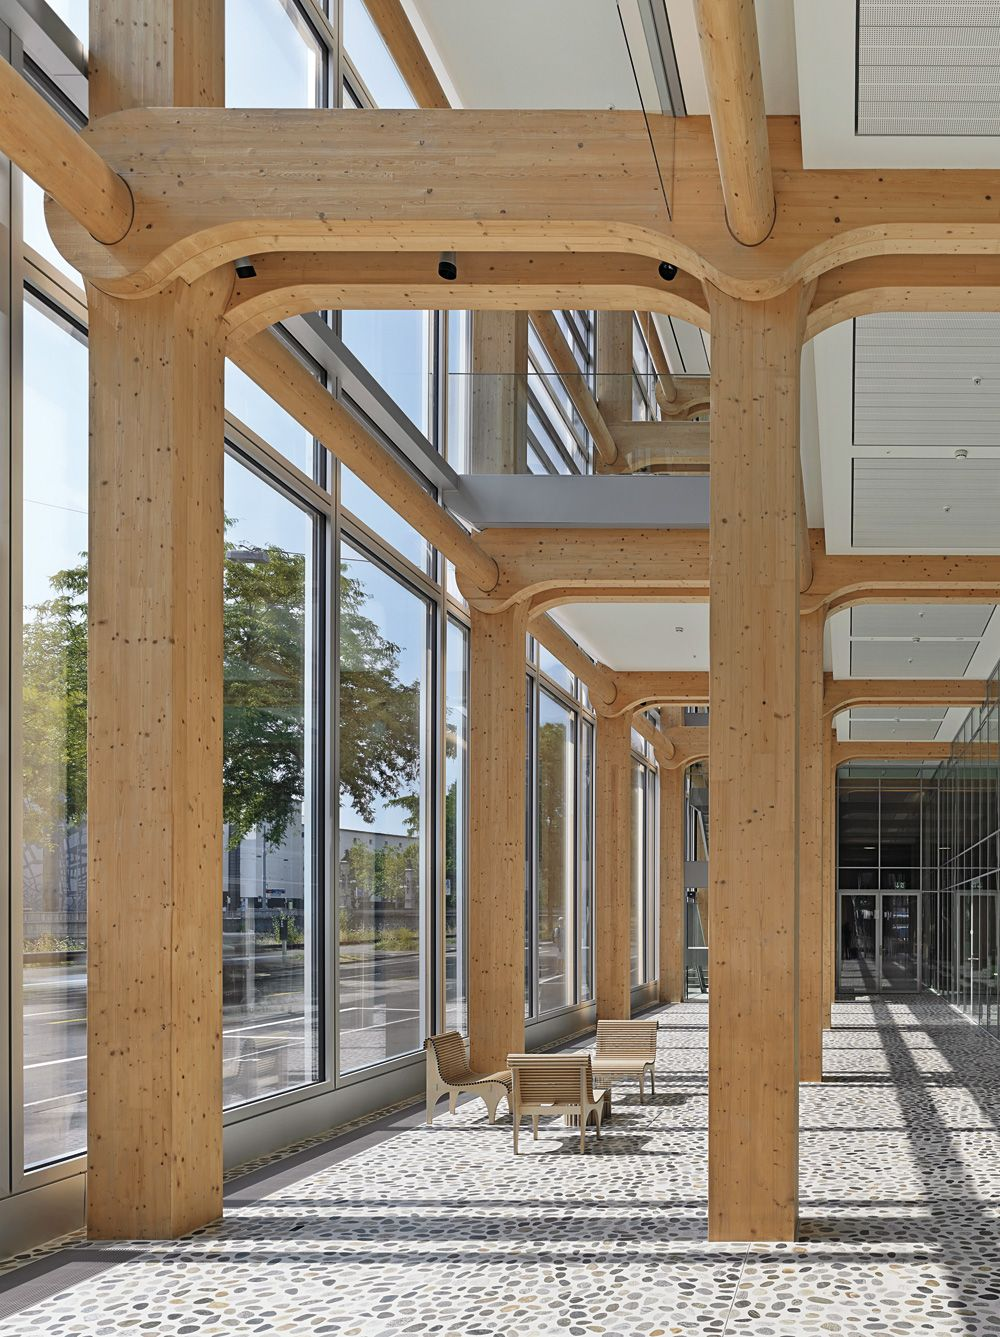 wooden office buildings. Technology: Seven Storey Wood Office Building In Zurich - DETAIL Inspiration Wooden Buildings